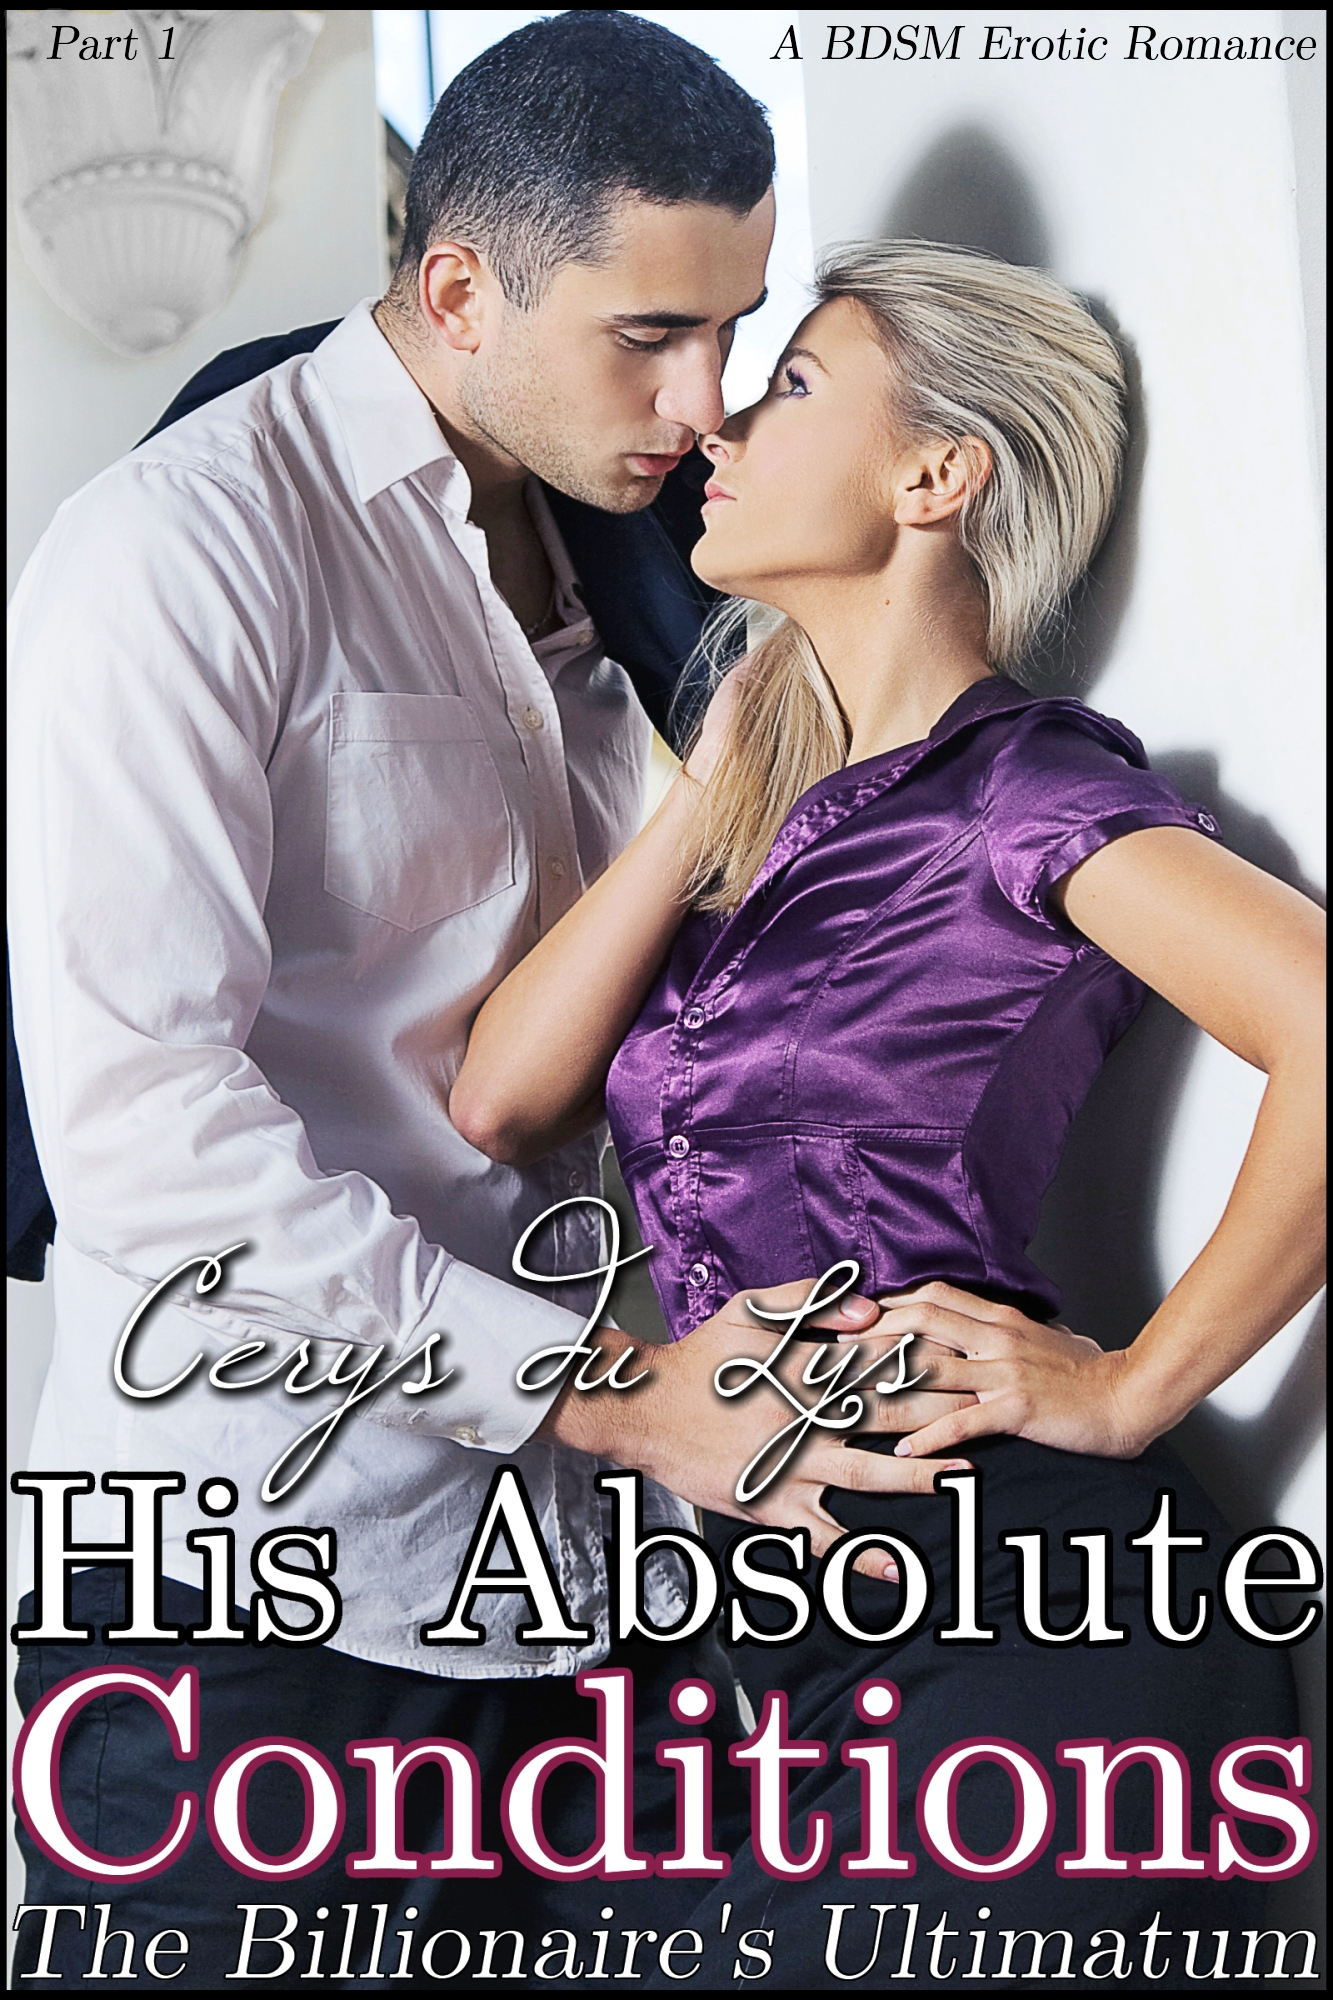 His Absolute Conditions: The Billionaire's Ultimatum (A BDSM Erotic Romance, Part 1)